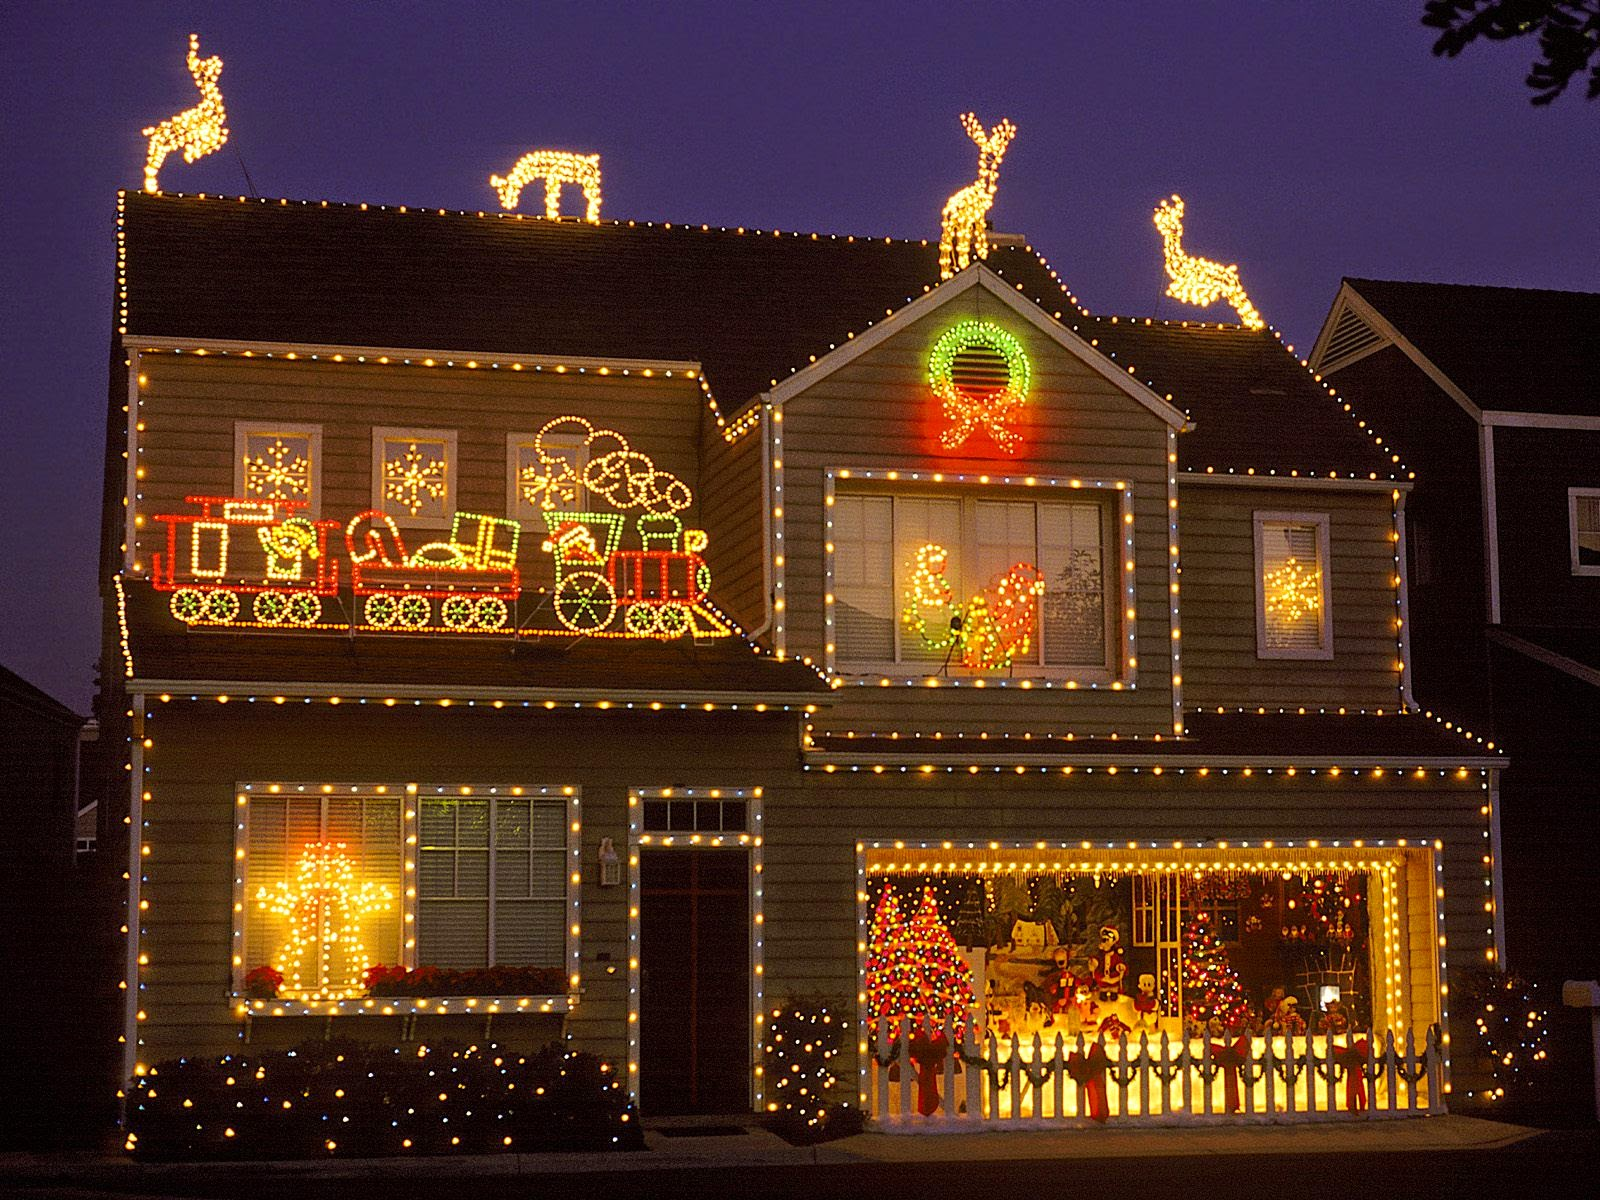 Merry Christmas 2015 Outdoor Light Decoration Images 1080p